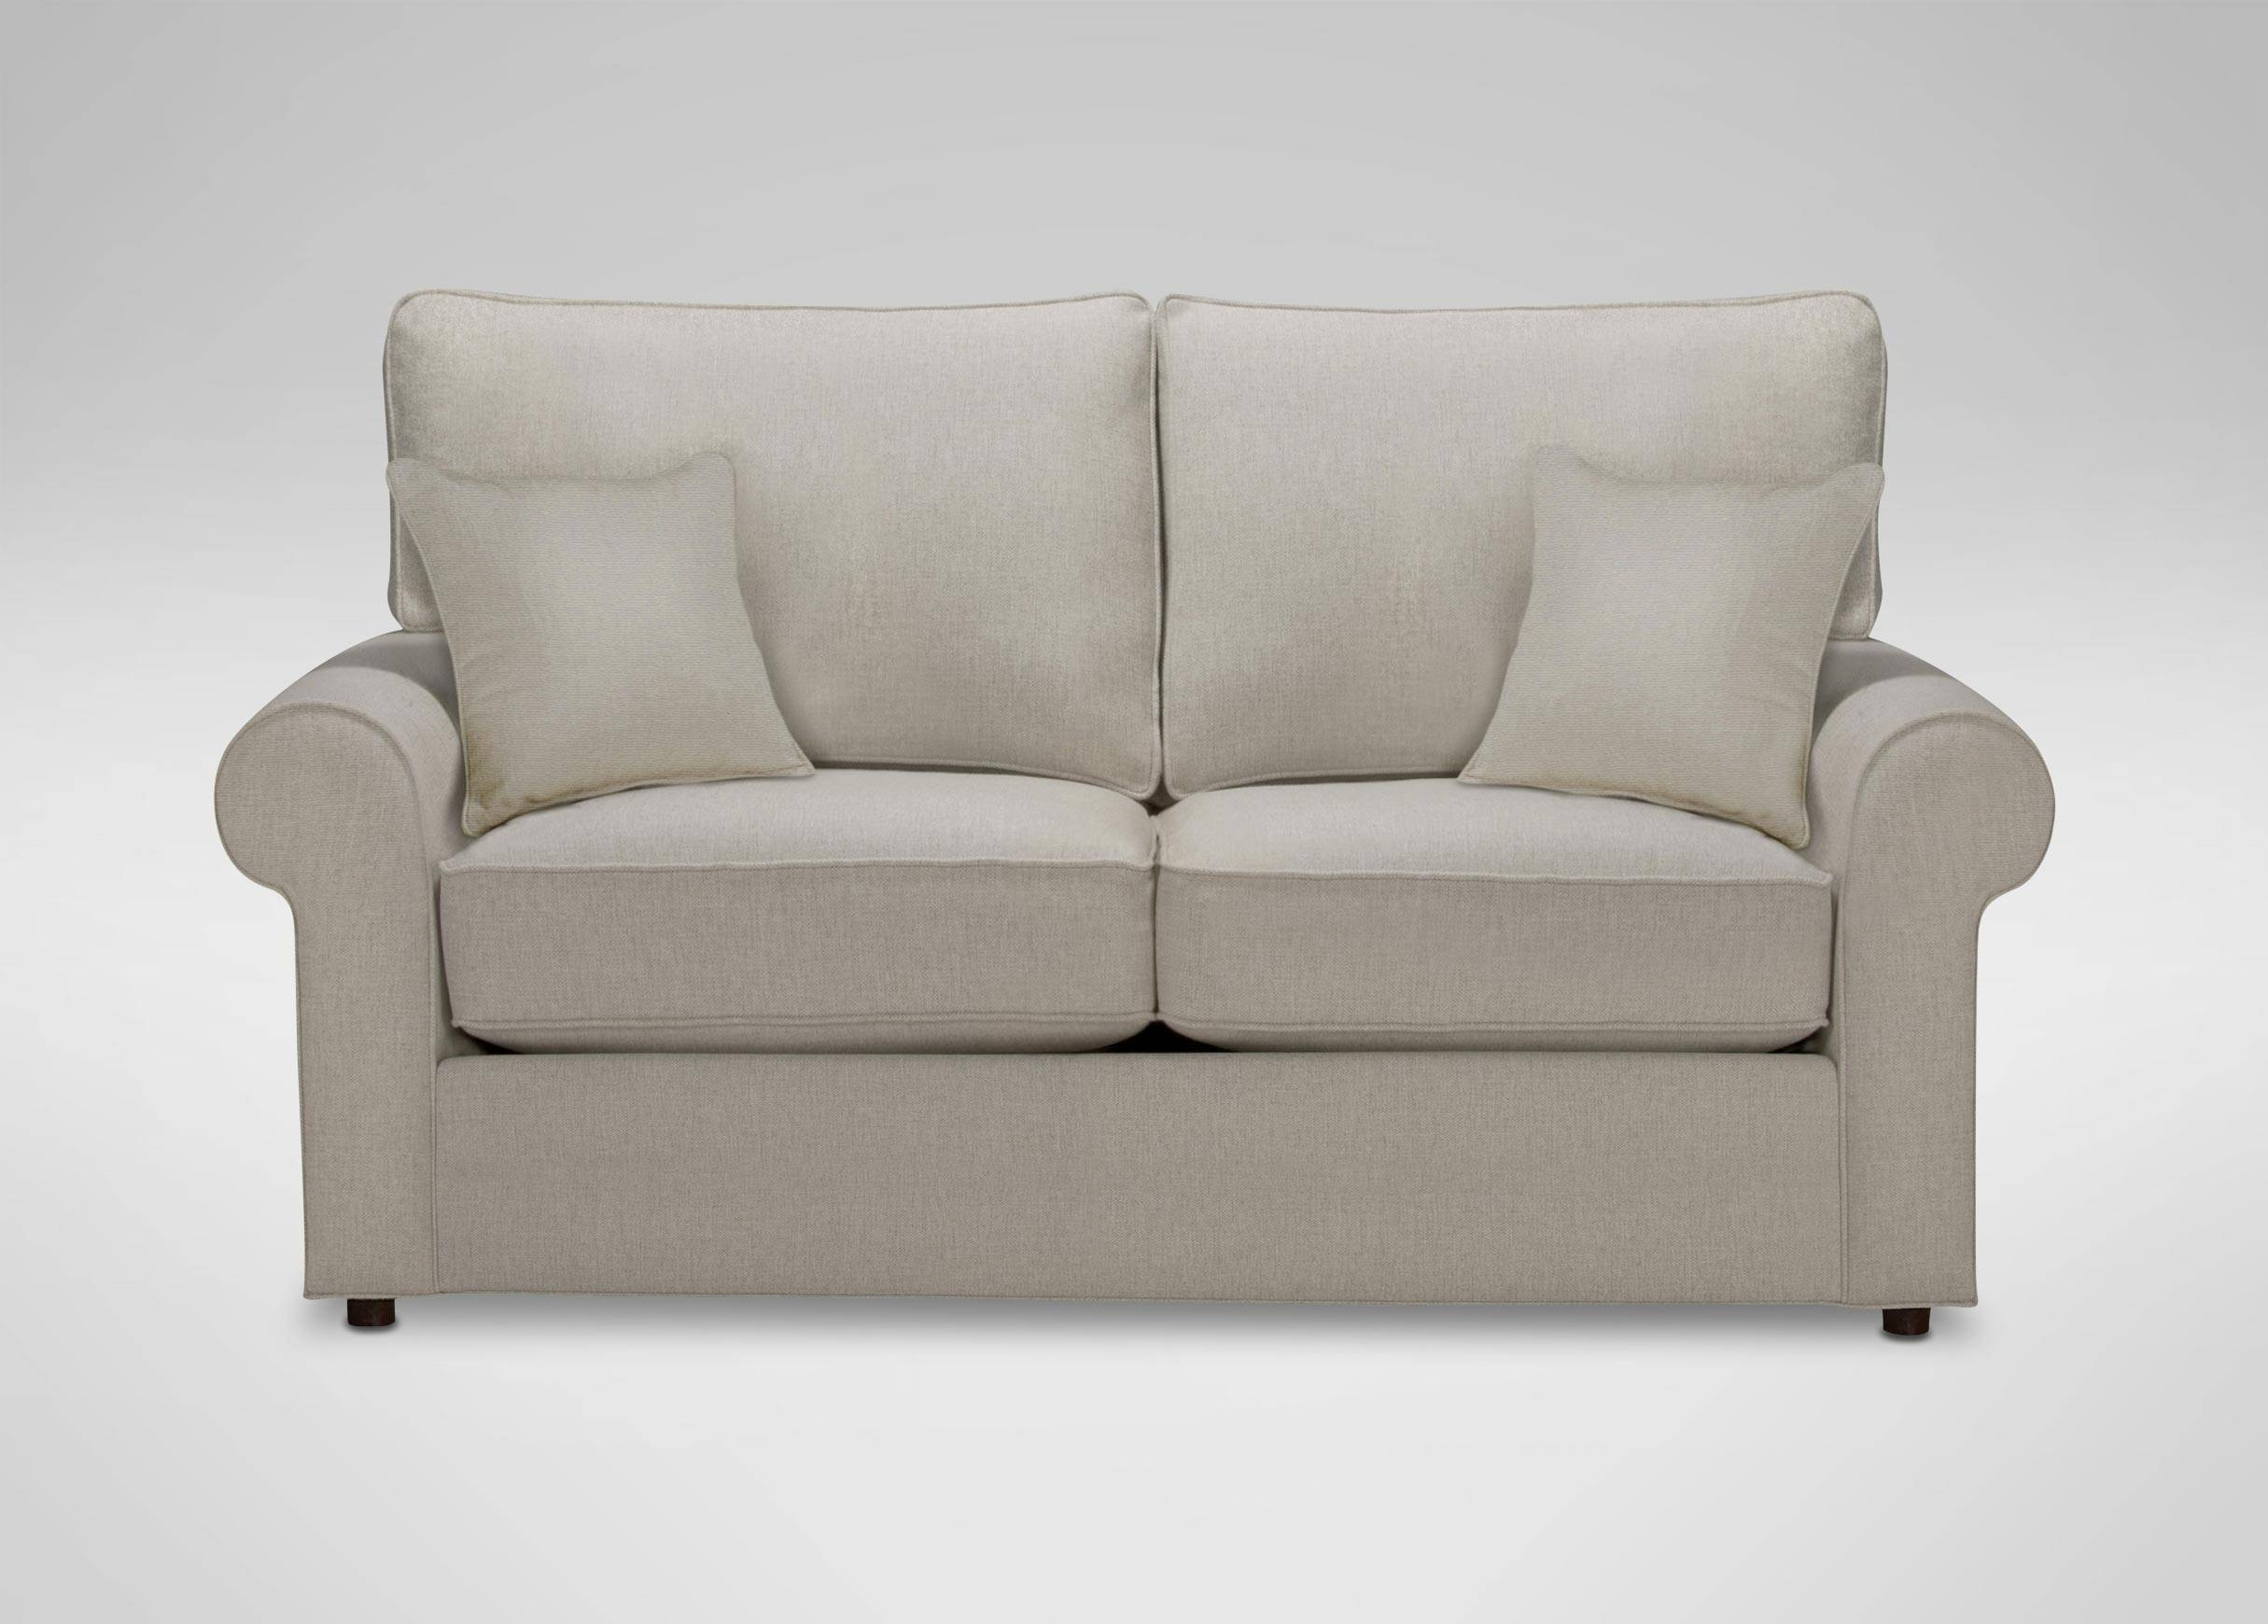 Retreat Roll-Arm Sofa, Quick Ship | Sofas & Loveseats in 68 Inch Sofas (Image 11 of 30)